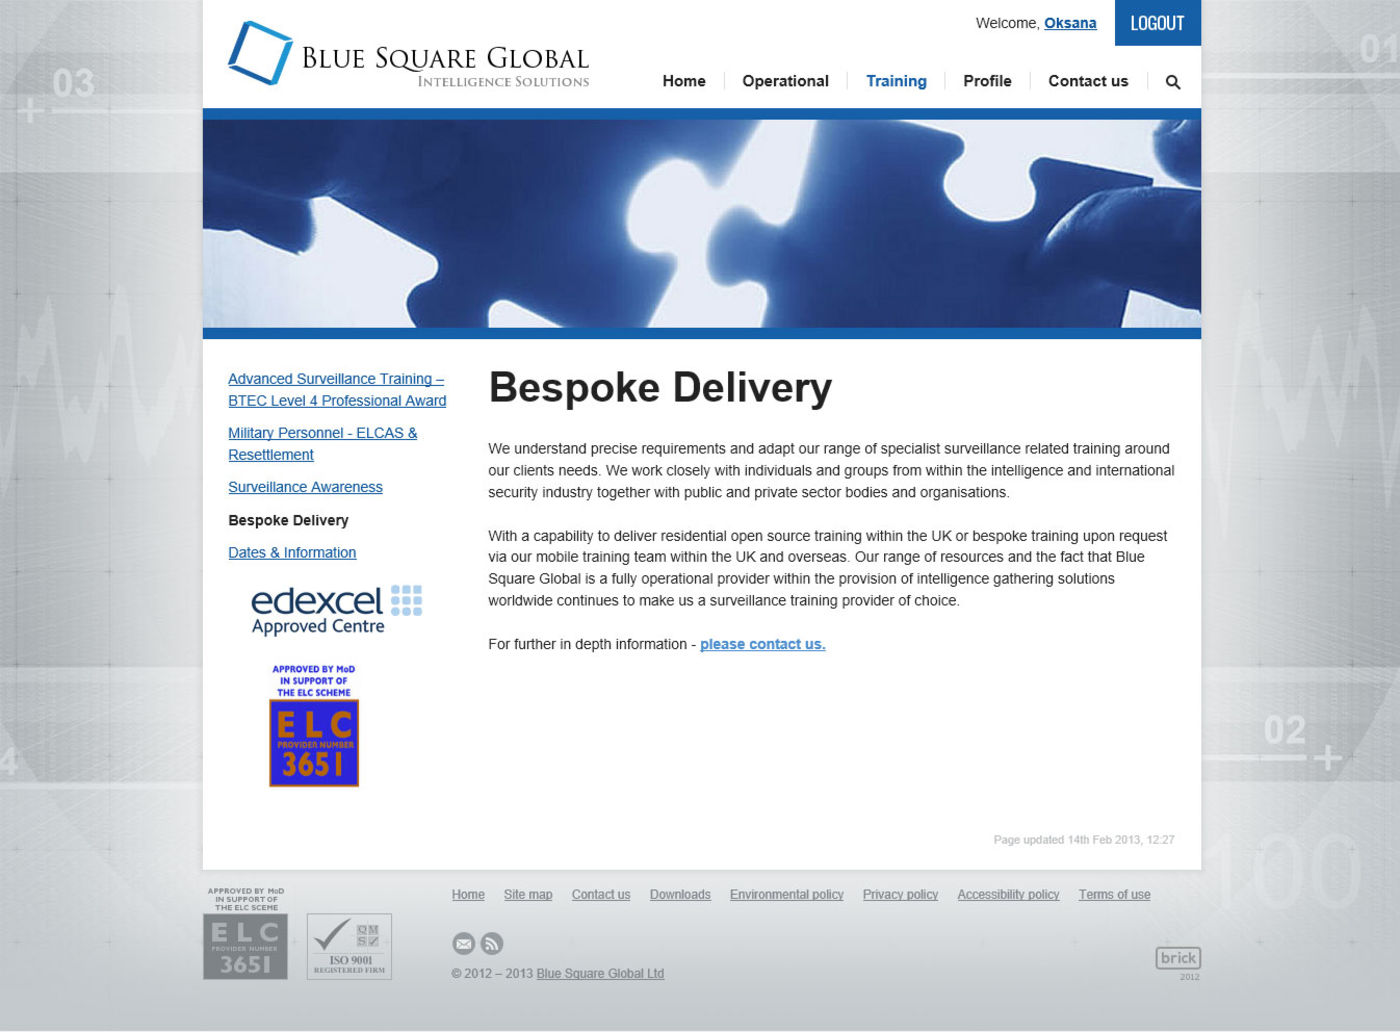 Blue Square Global Bespoke Delivery